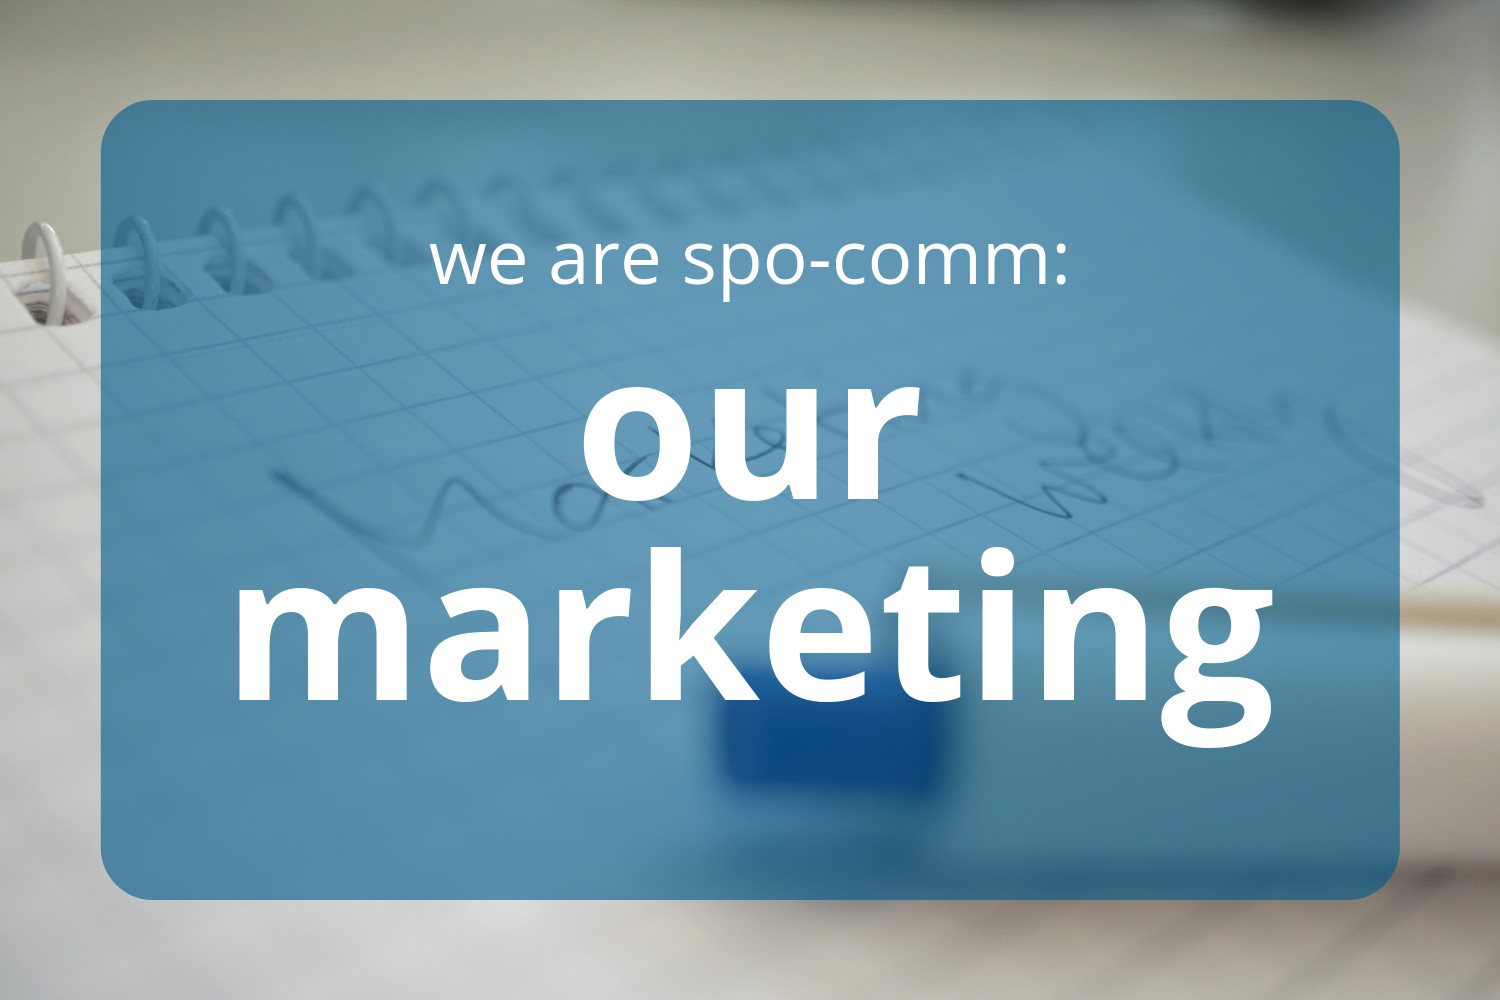 Content & Conversions: The spo-comm Marketing team